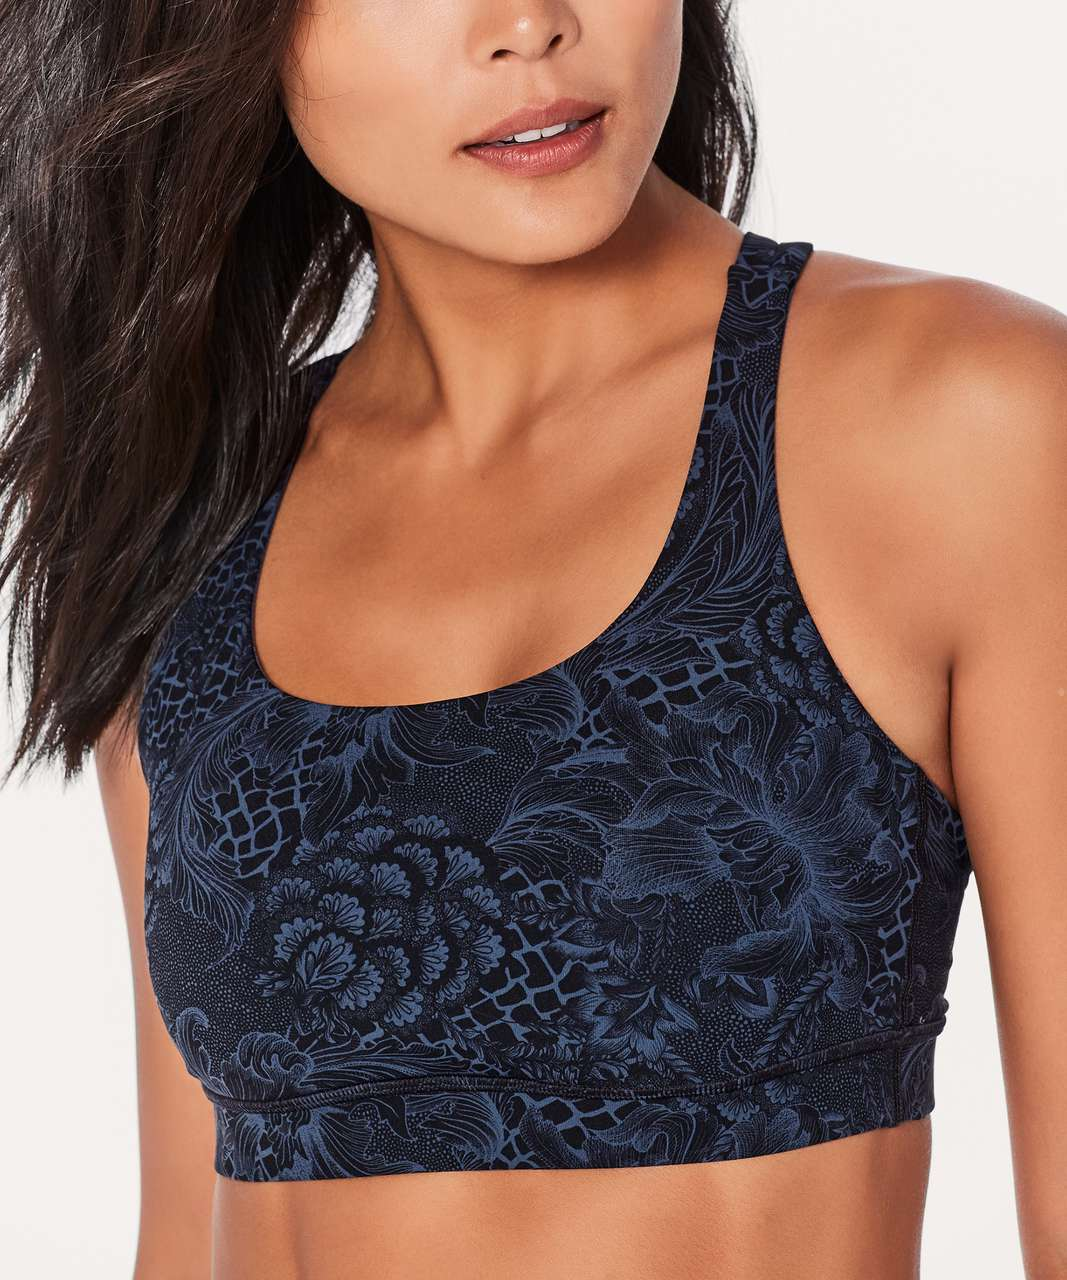 Lululemon Energy Bra - Nouveau Mach Blue Black